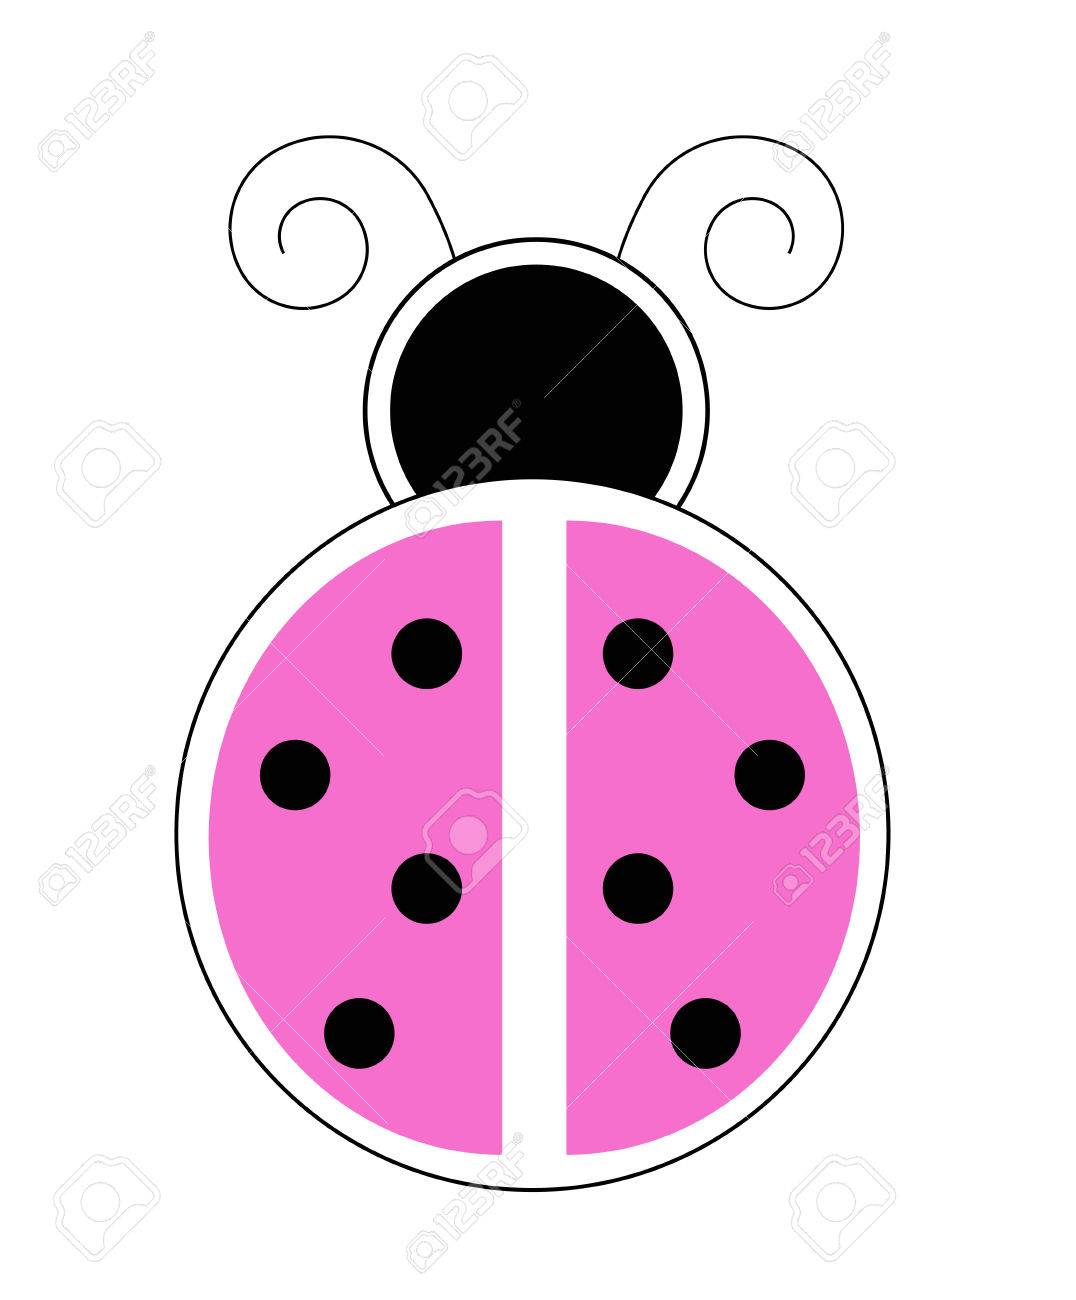 Pink ladybug royalty free cliparts vectors and stock illustration pink ladybug stock vector 60160209 stopboris Images